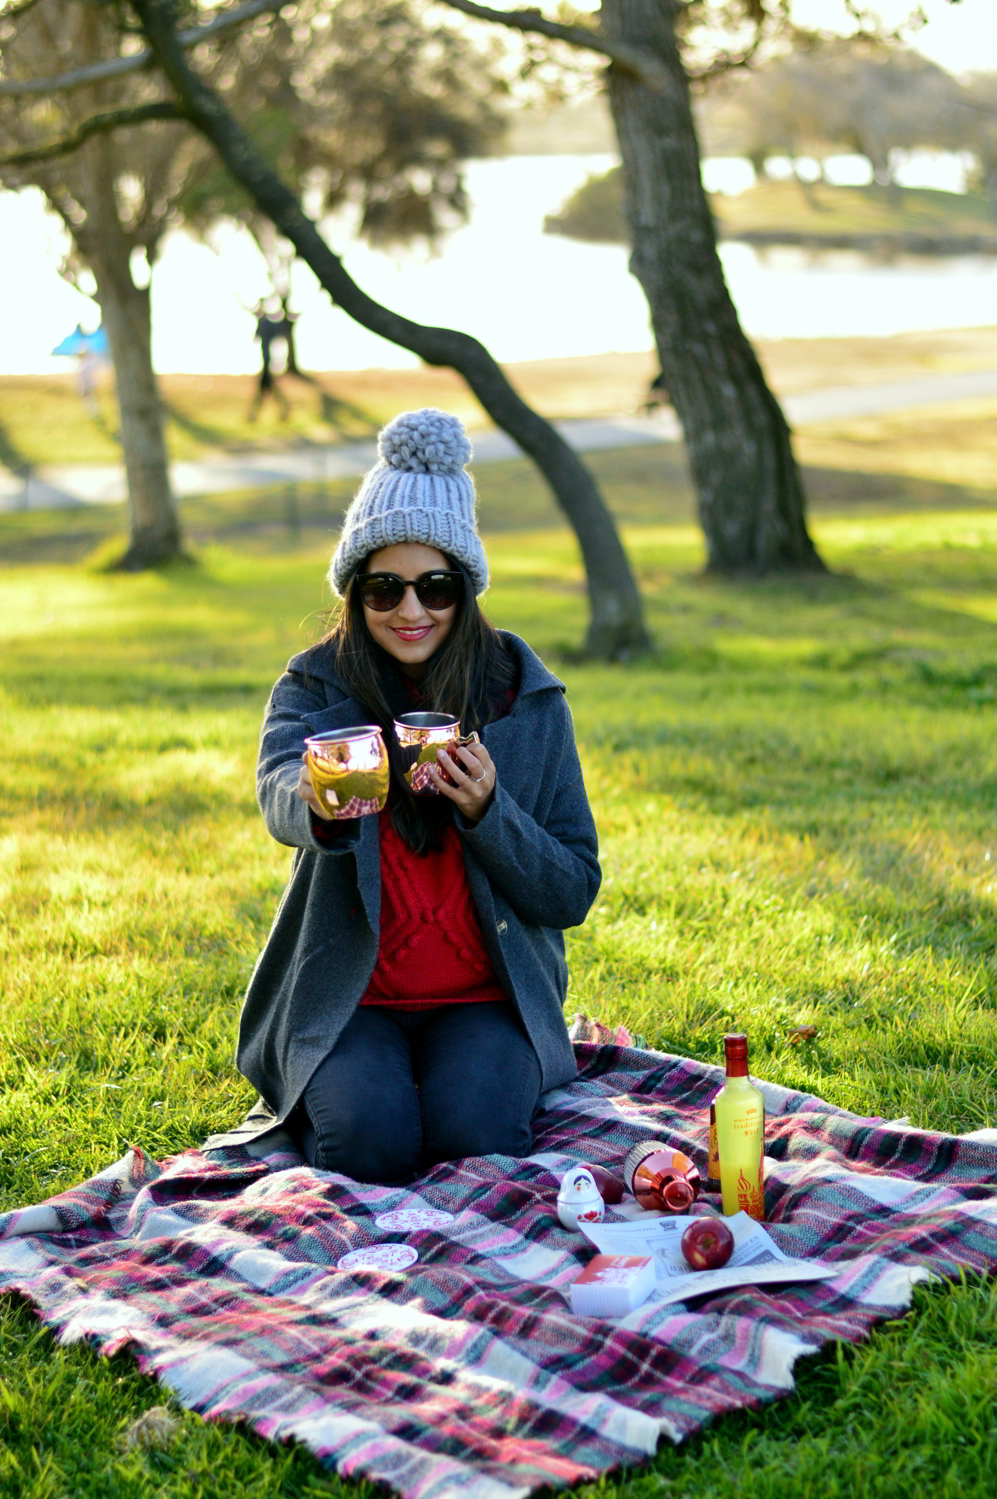 valentines-day-picnic-park-winter-outfit-style-blogger-moscow-mules-subscription-service 4